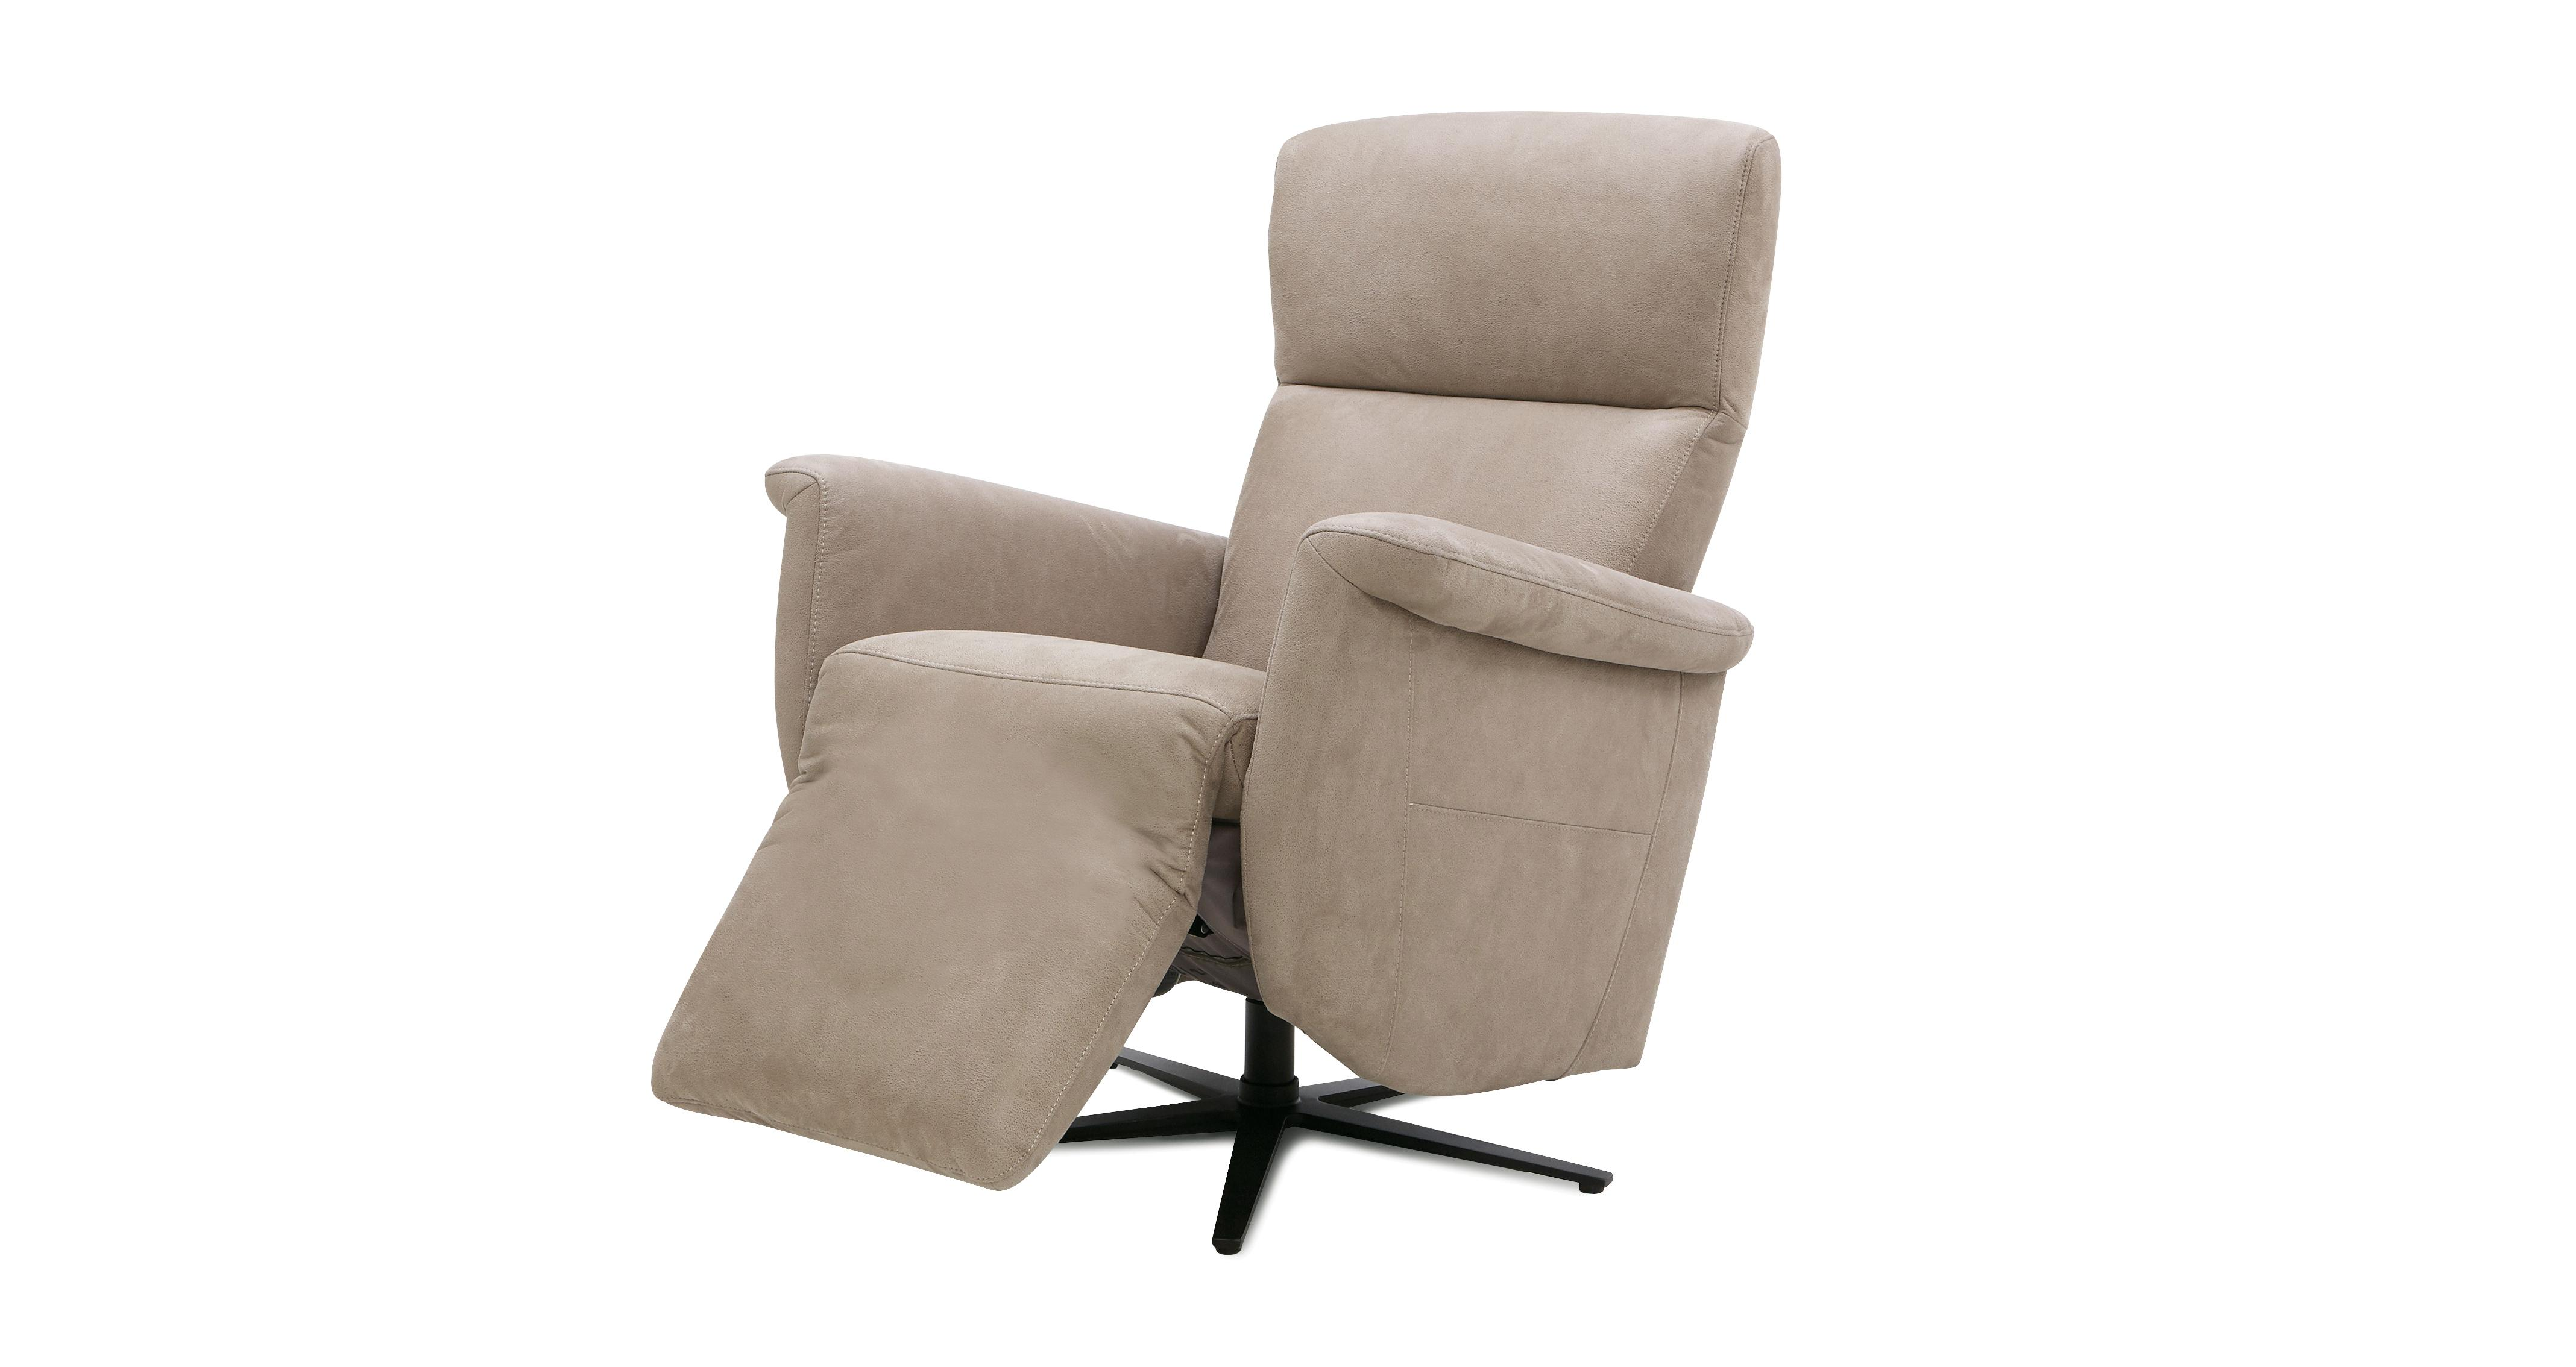 Asten Elektrische recliner TV stoel Arizona | DFS Banken